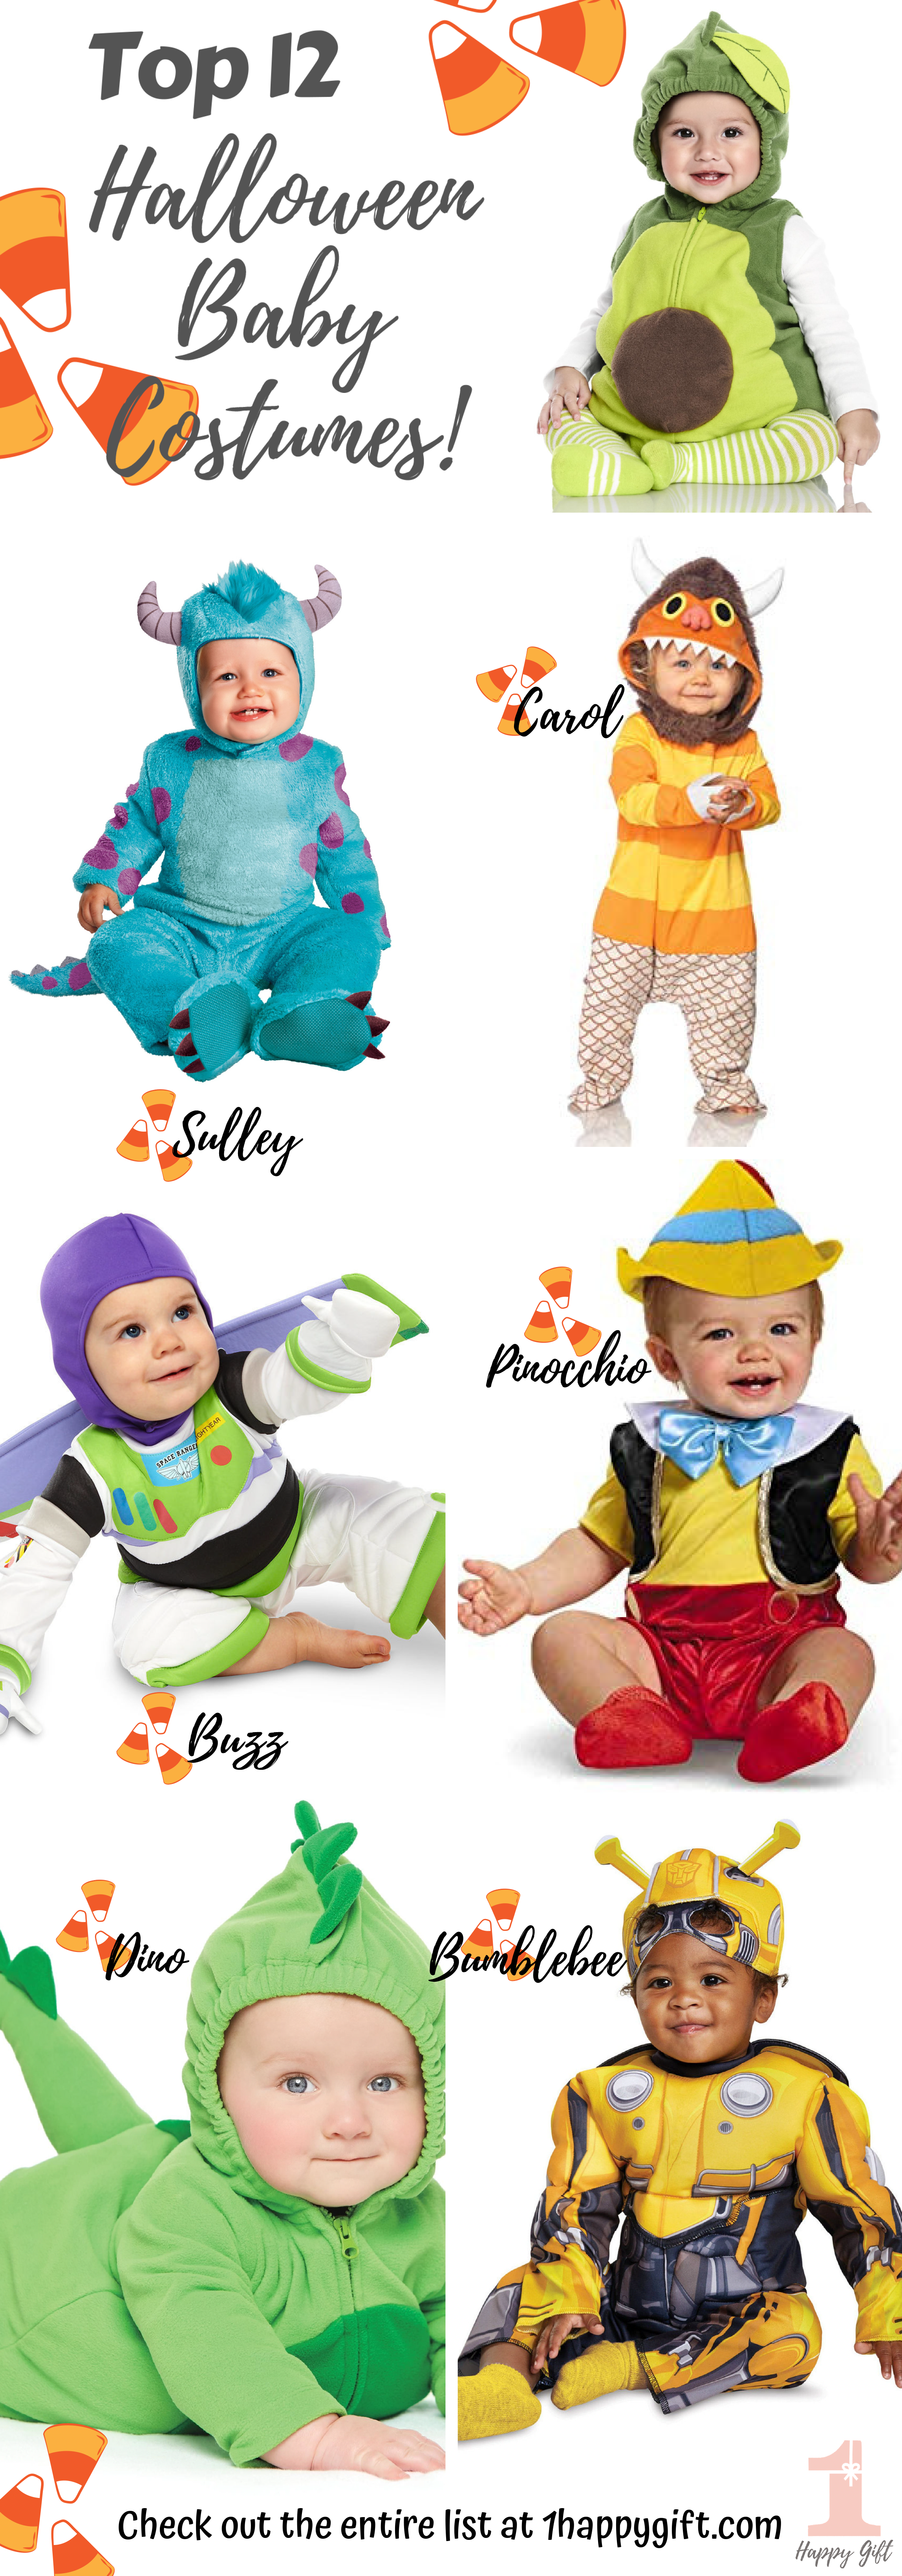 best halloween baby costumes 2018! - top 12 costumes for baby boys